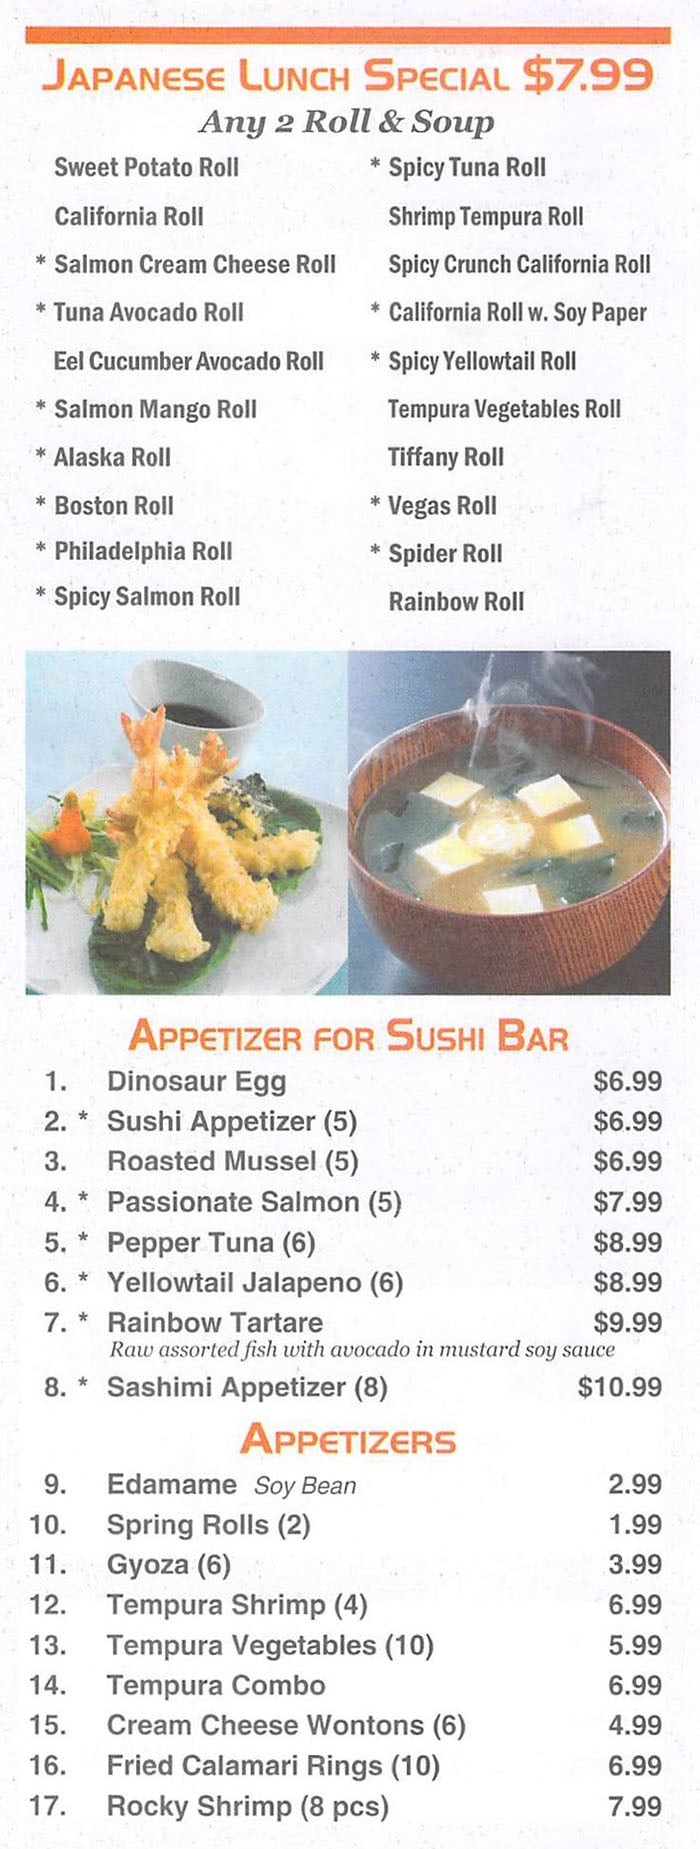 Red 8 Asian Bistro & Sushi Bar menu - Japanese lunch special, appetizers